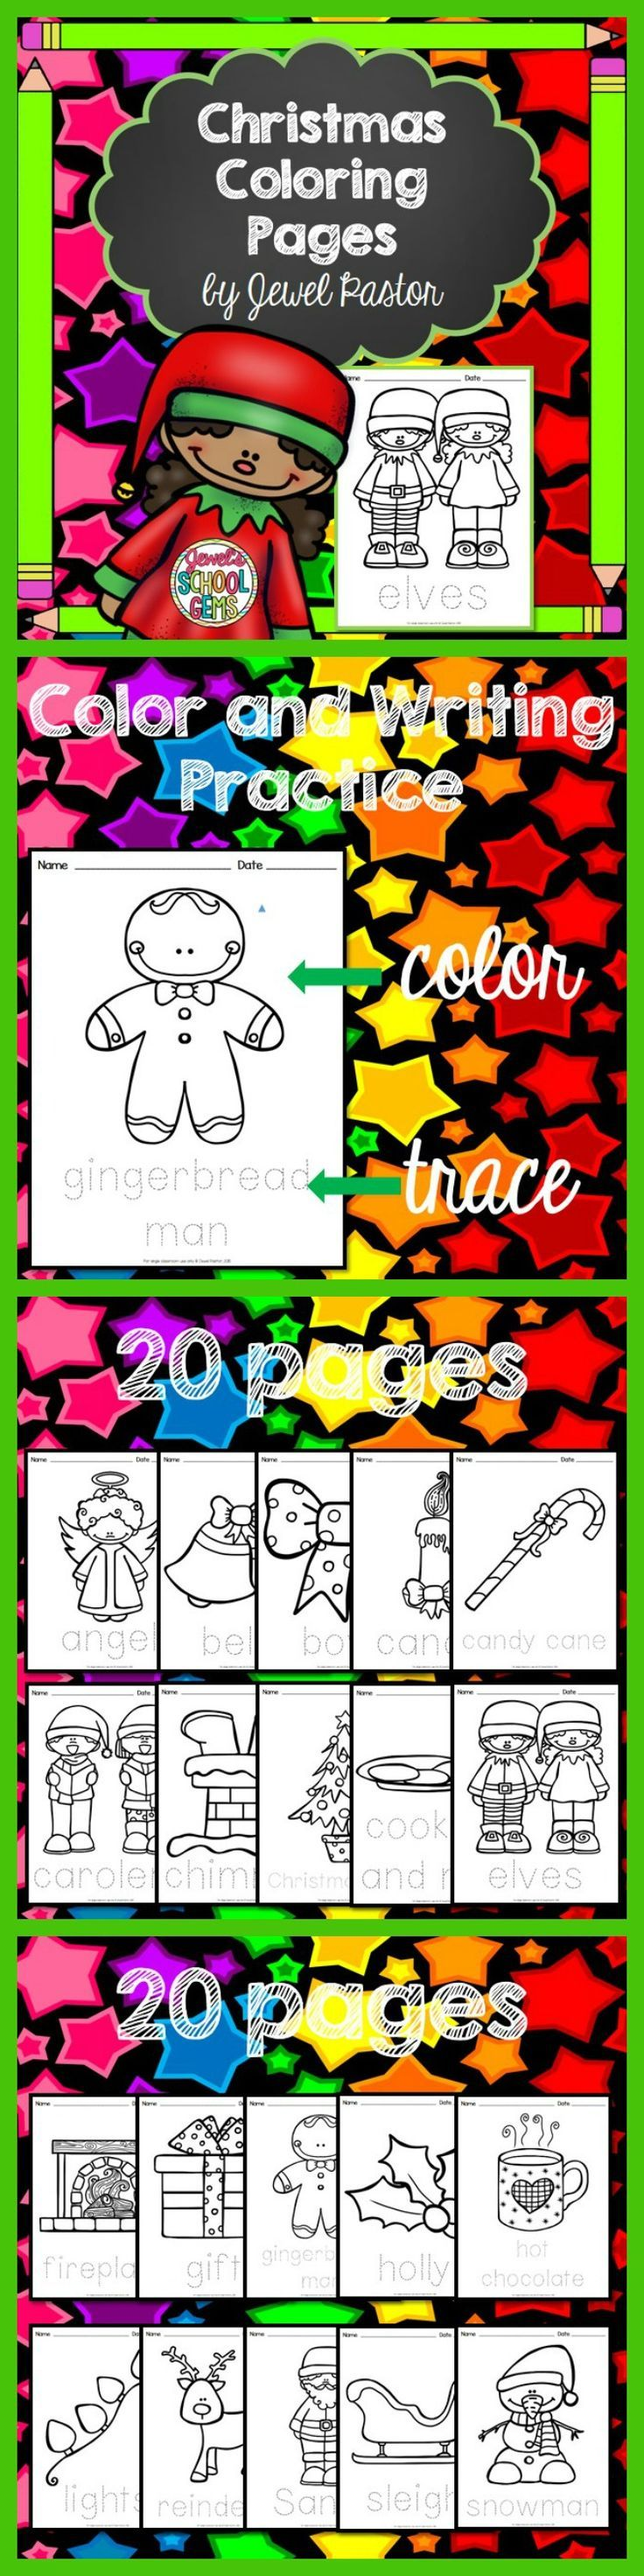 Christmas coloring pages for kindergarten students - Christmas Coloring Pages Christmas Coloring Pages Is The Perfect Activity For Your Students This